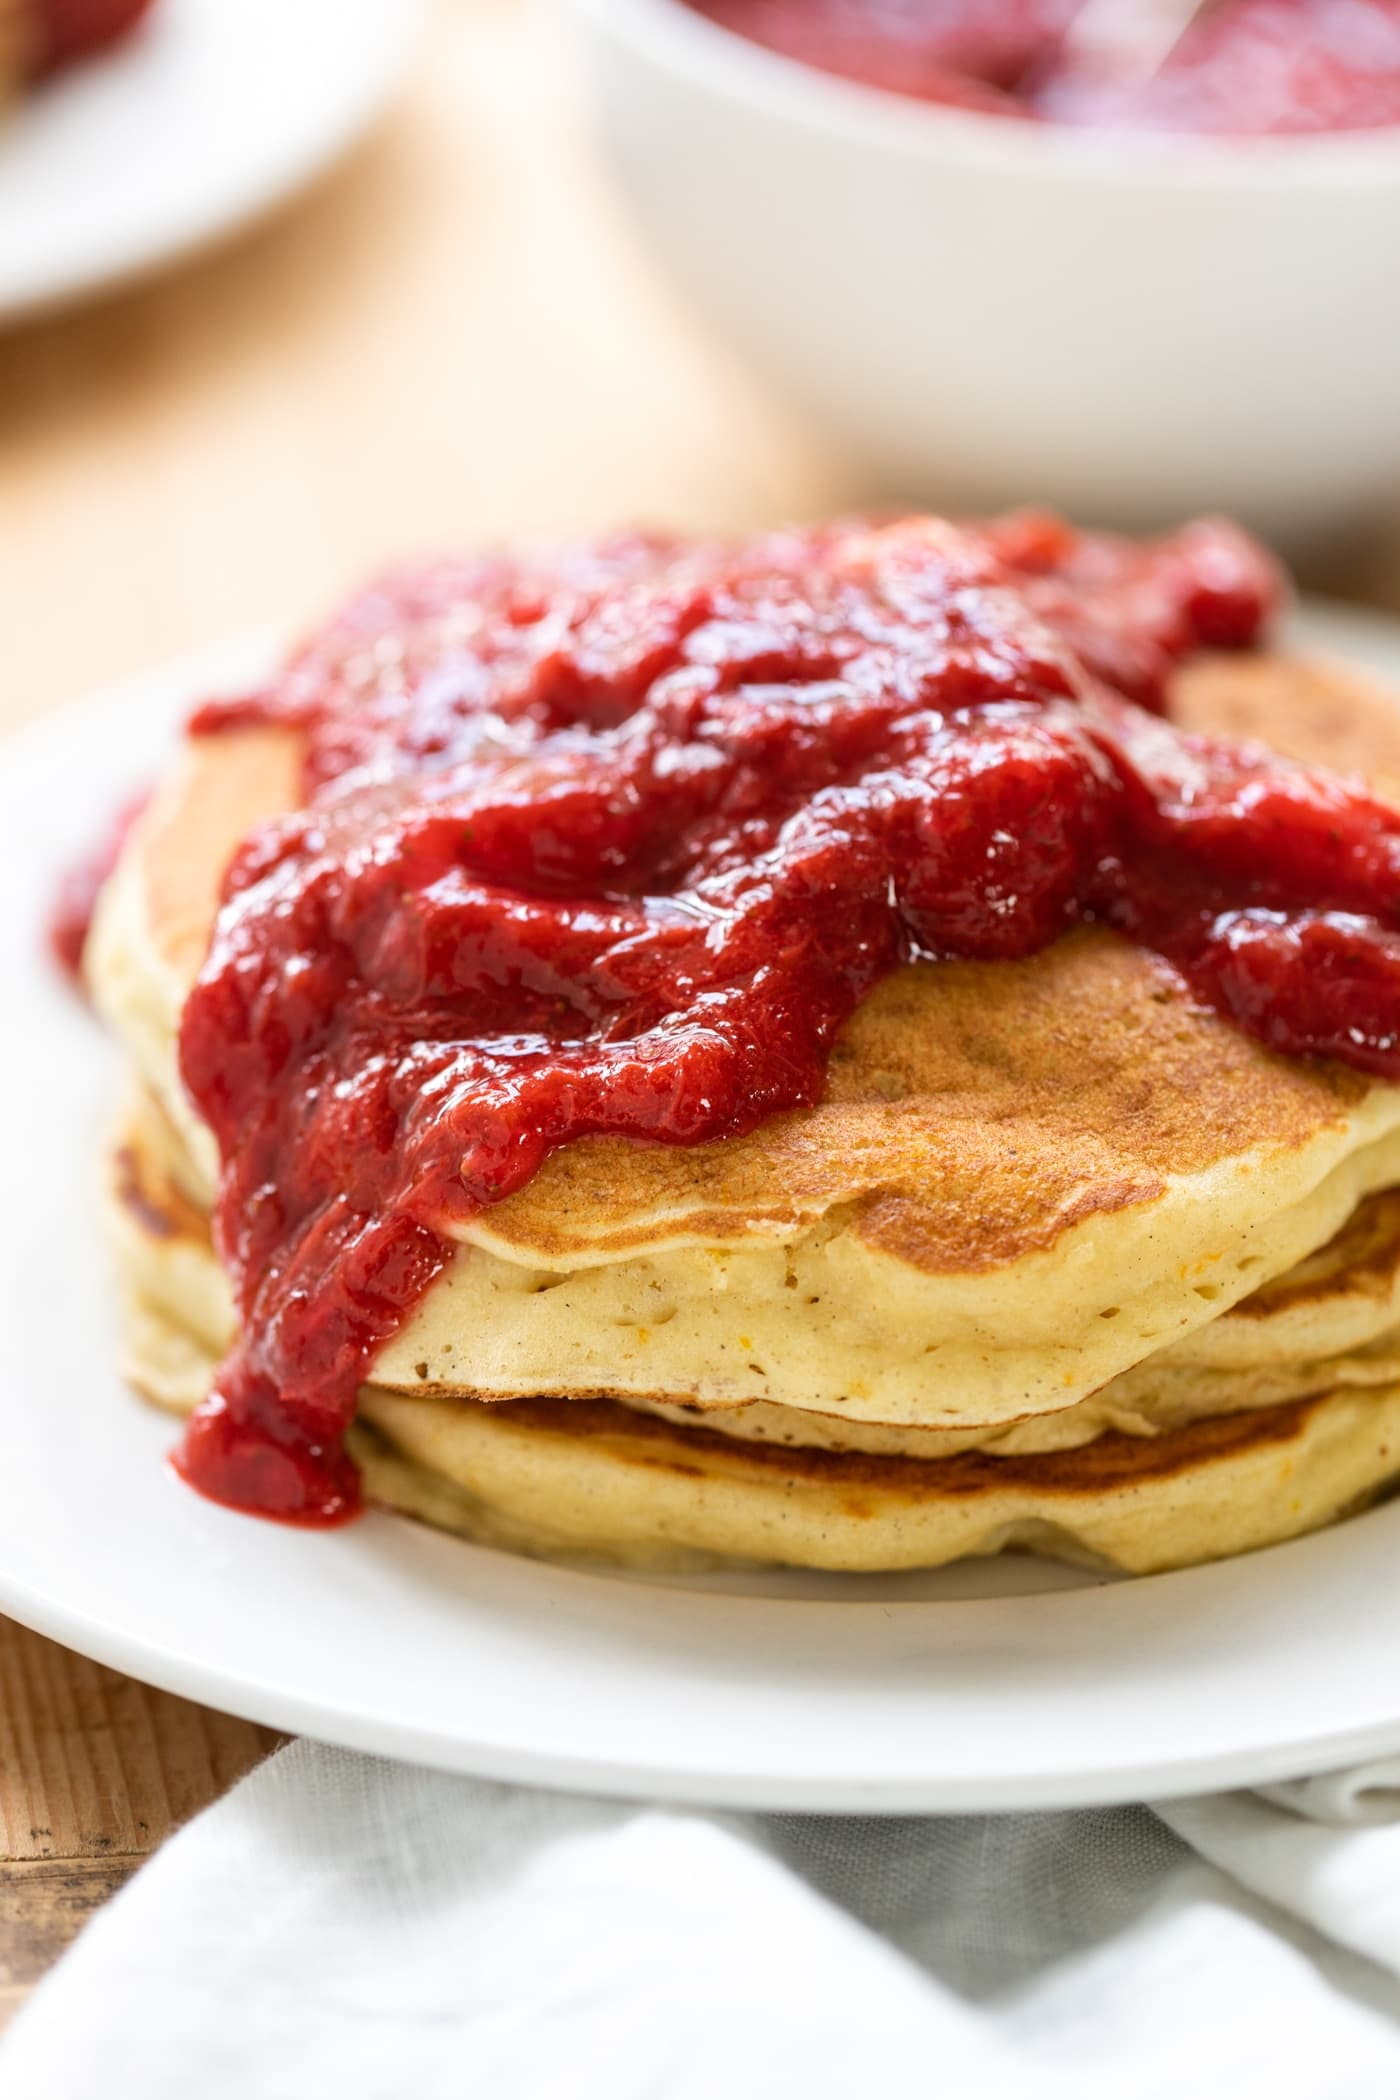 Three buttermilk pancakes sitting on white plate smothered with rhubarb strawberry sauce with linen towel in front all on wood surface